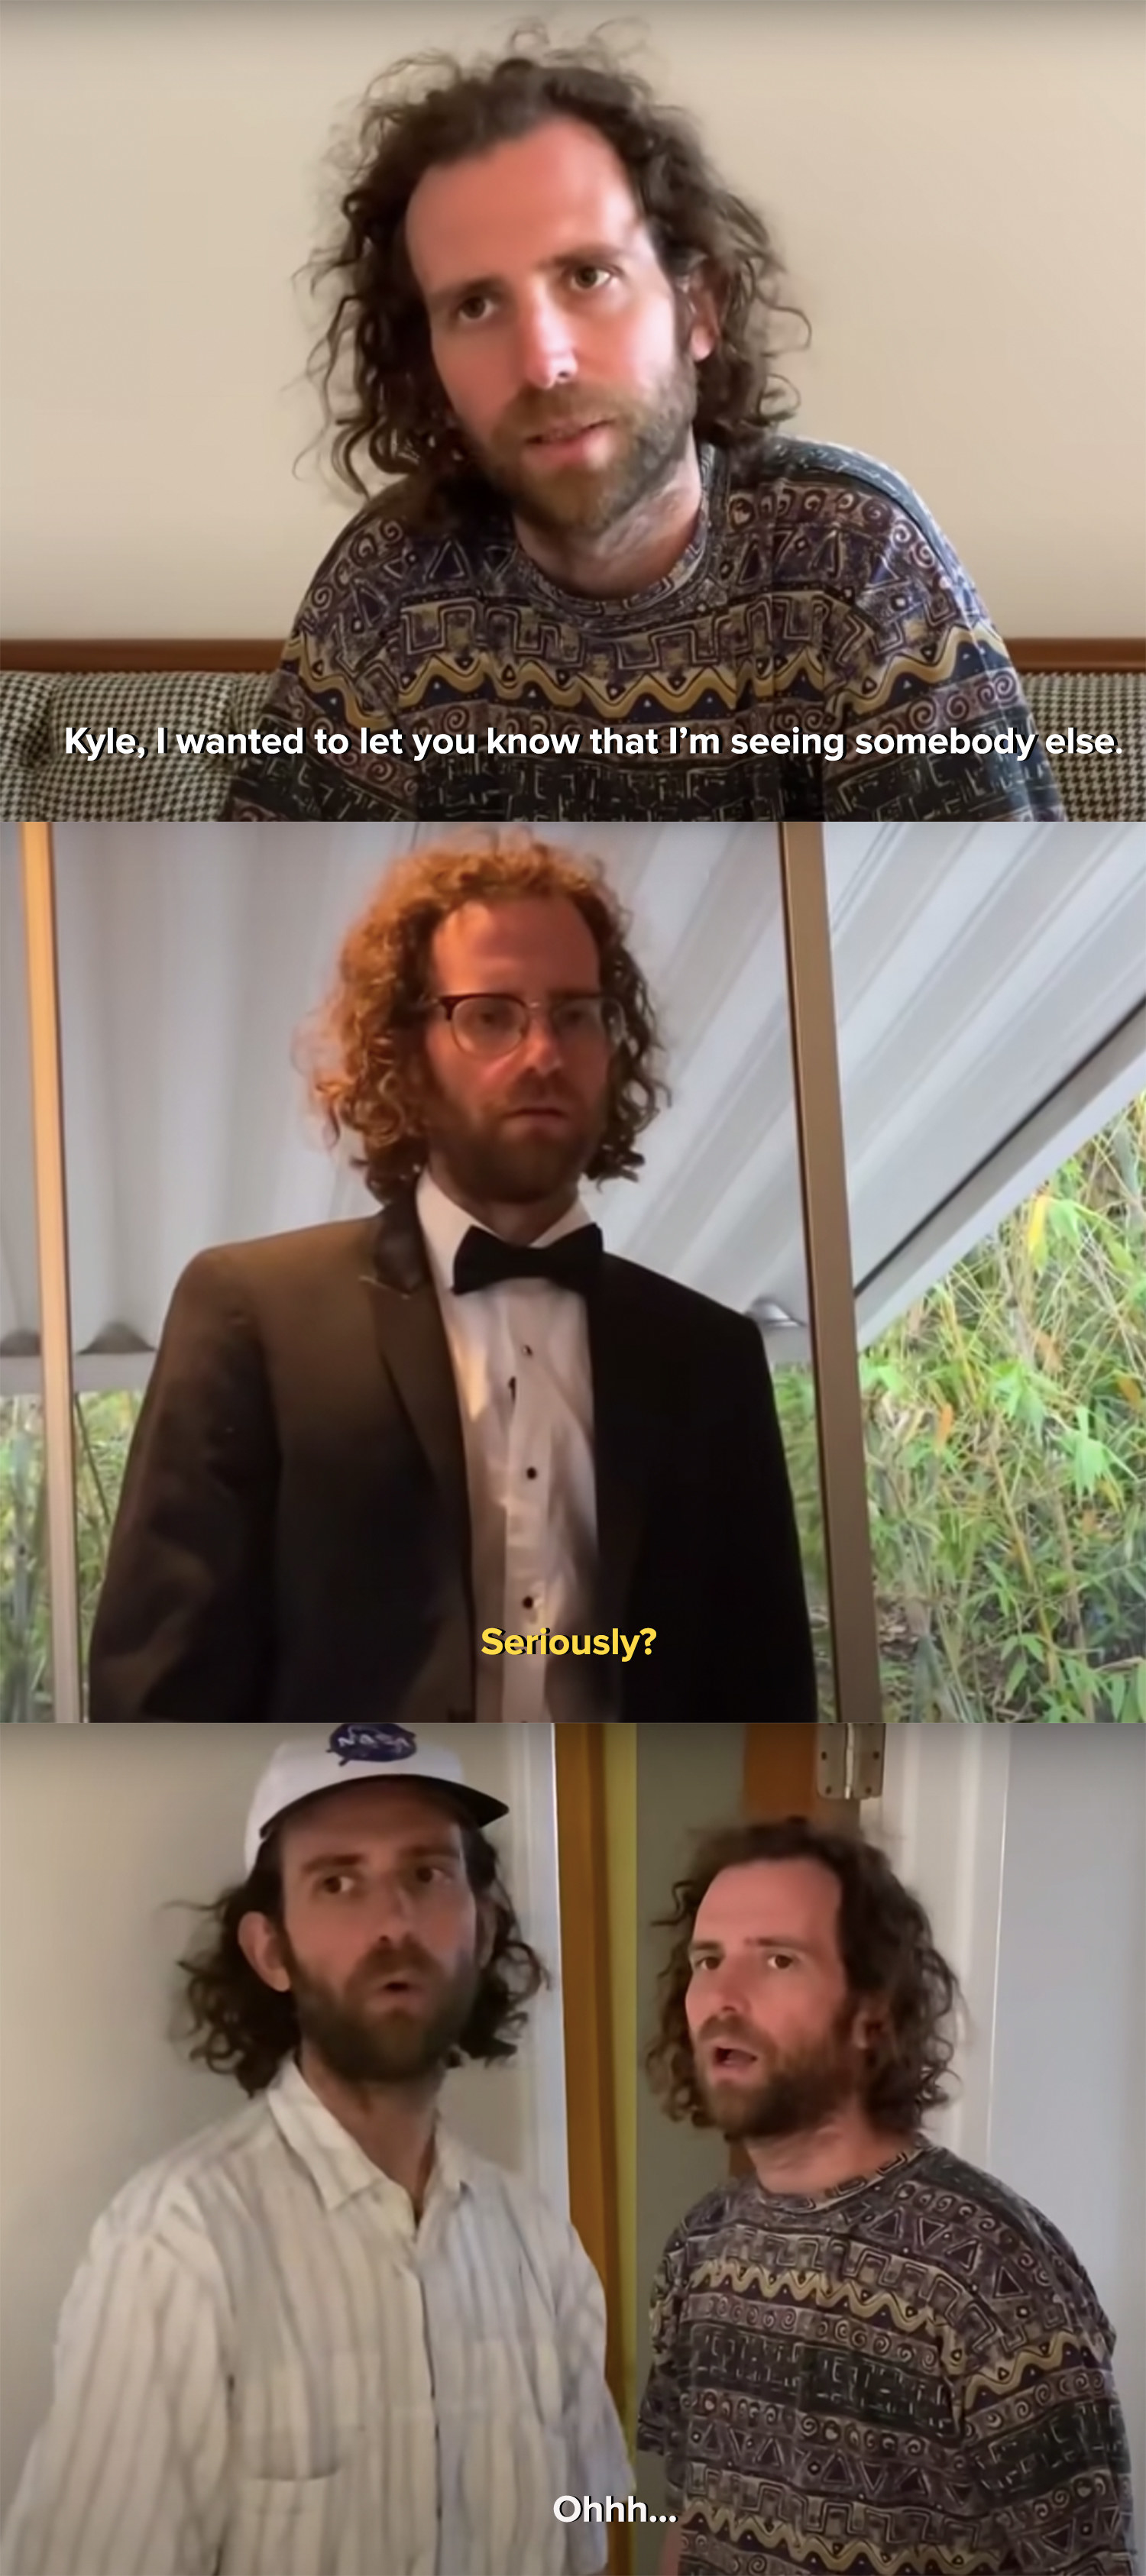 Kyle's girlfriend tells him that she's seeing someone else before going with his roommate